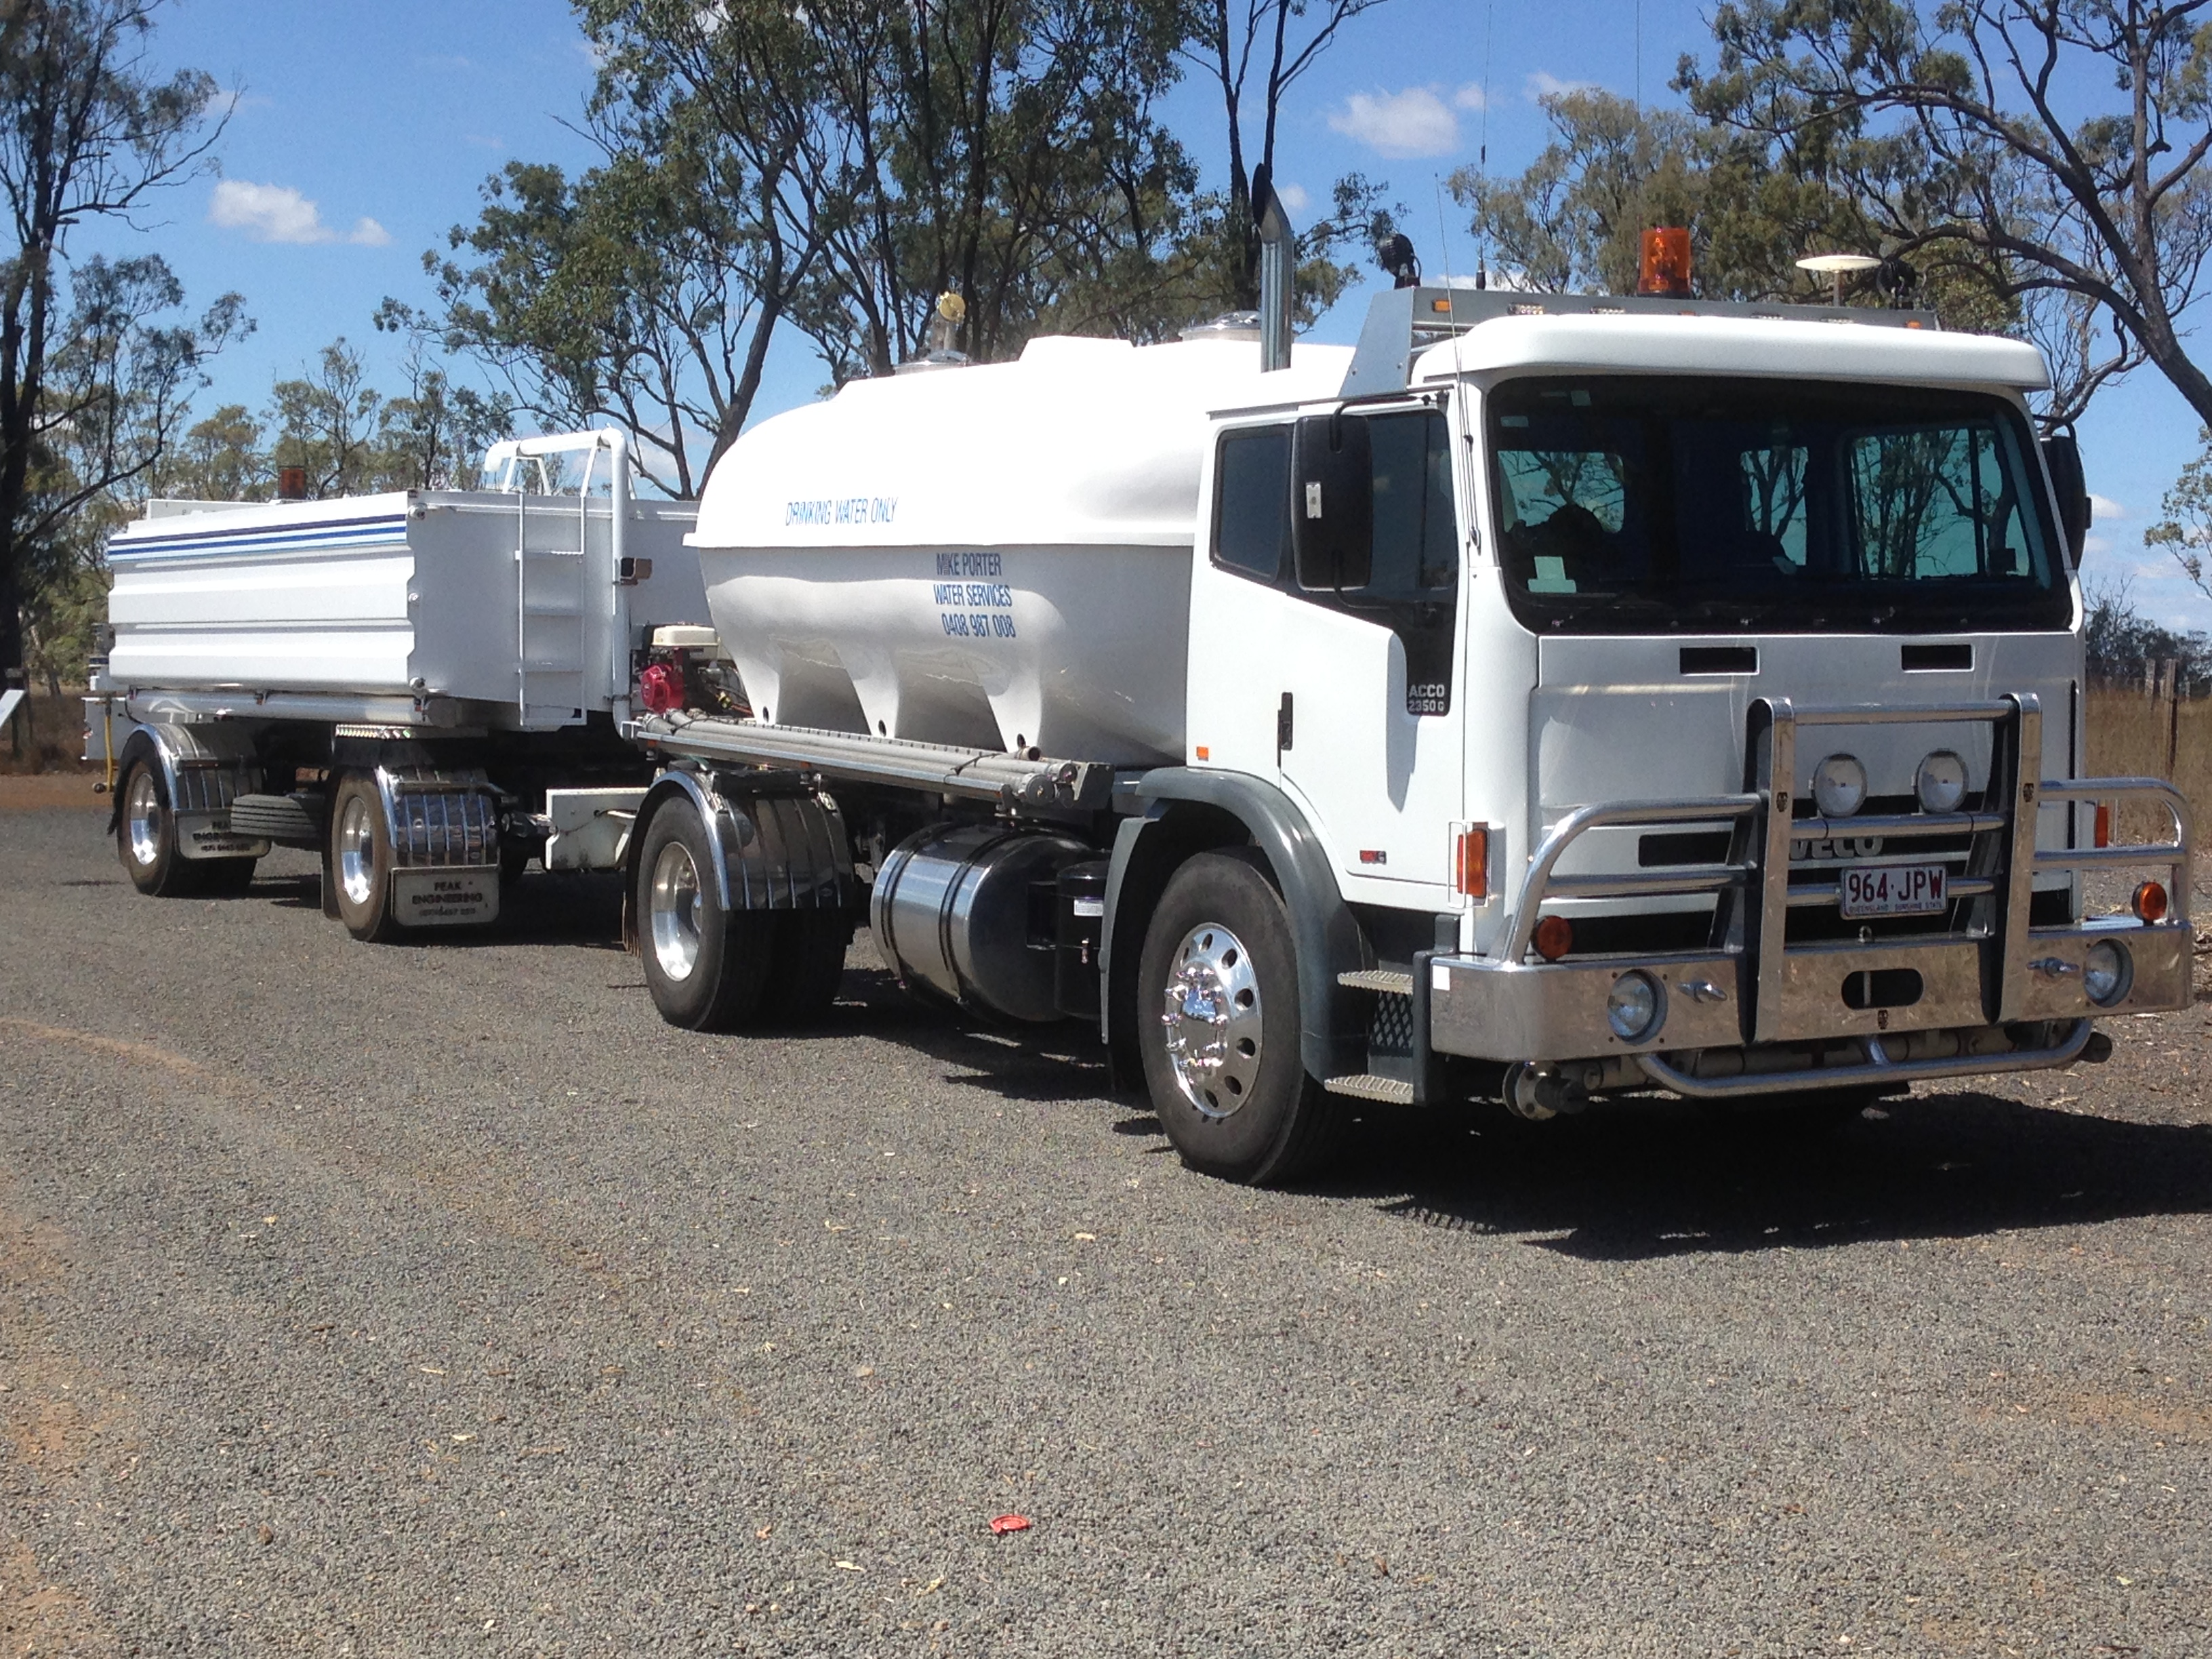 Water truck and dog tanker trailer